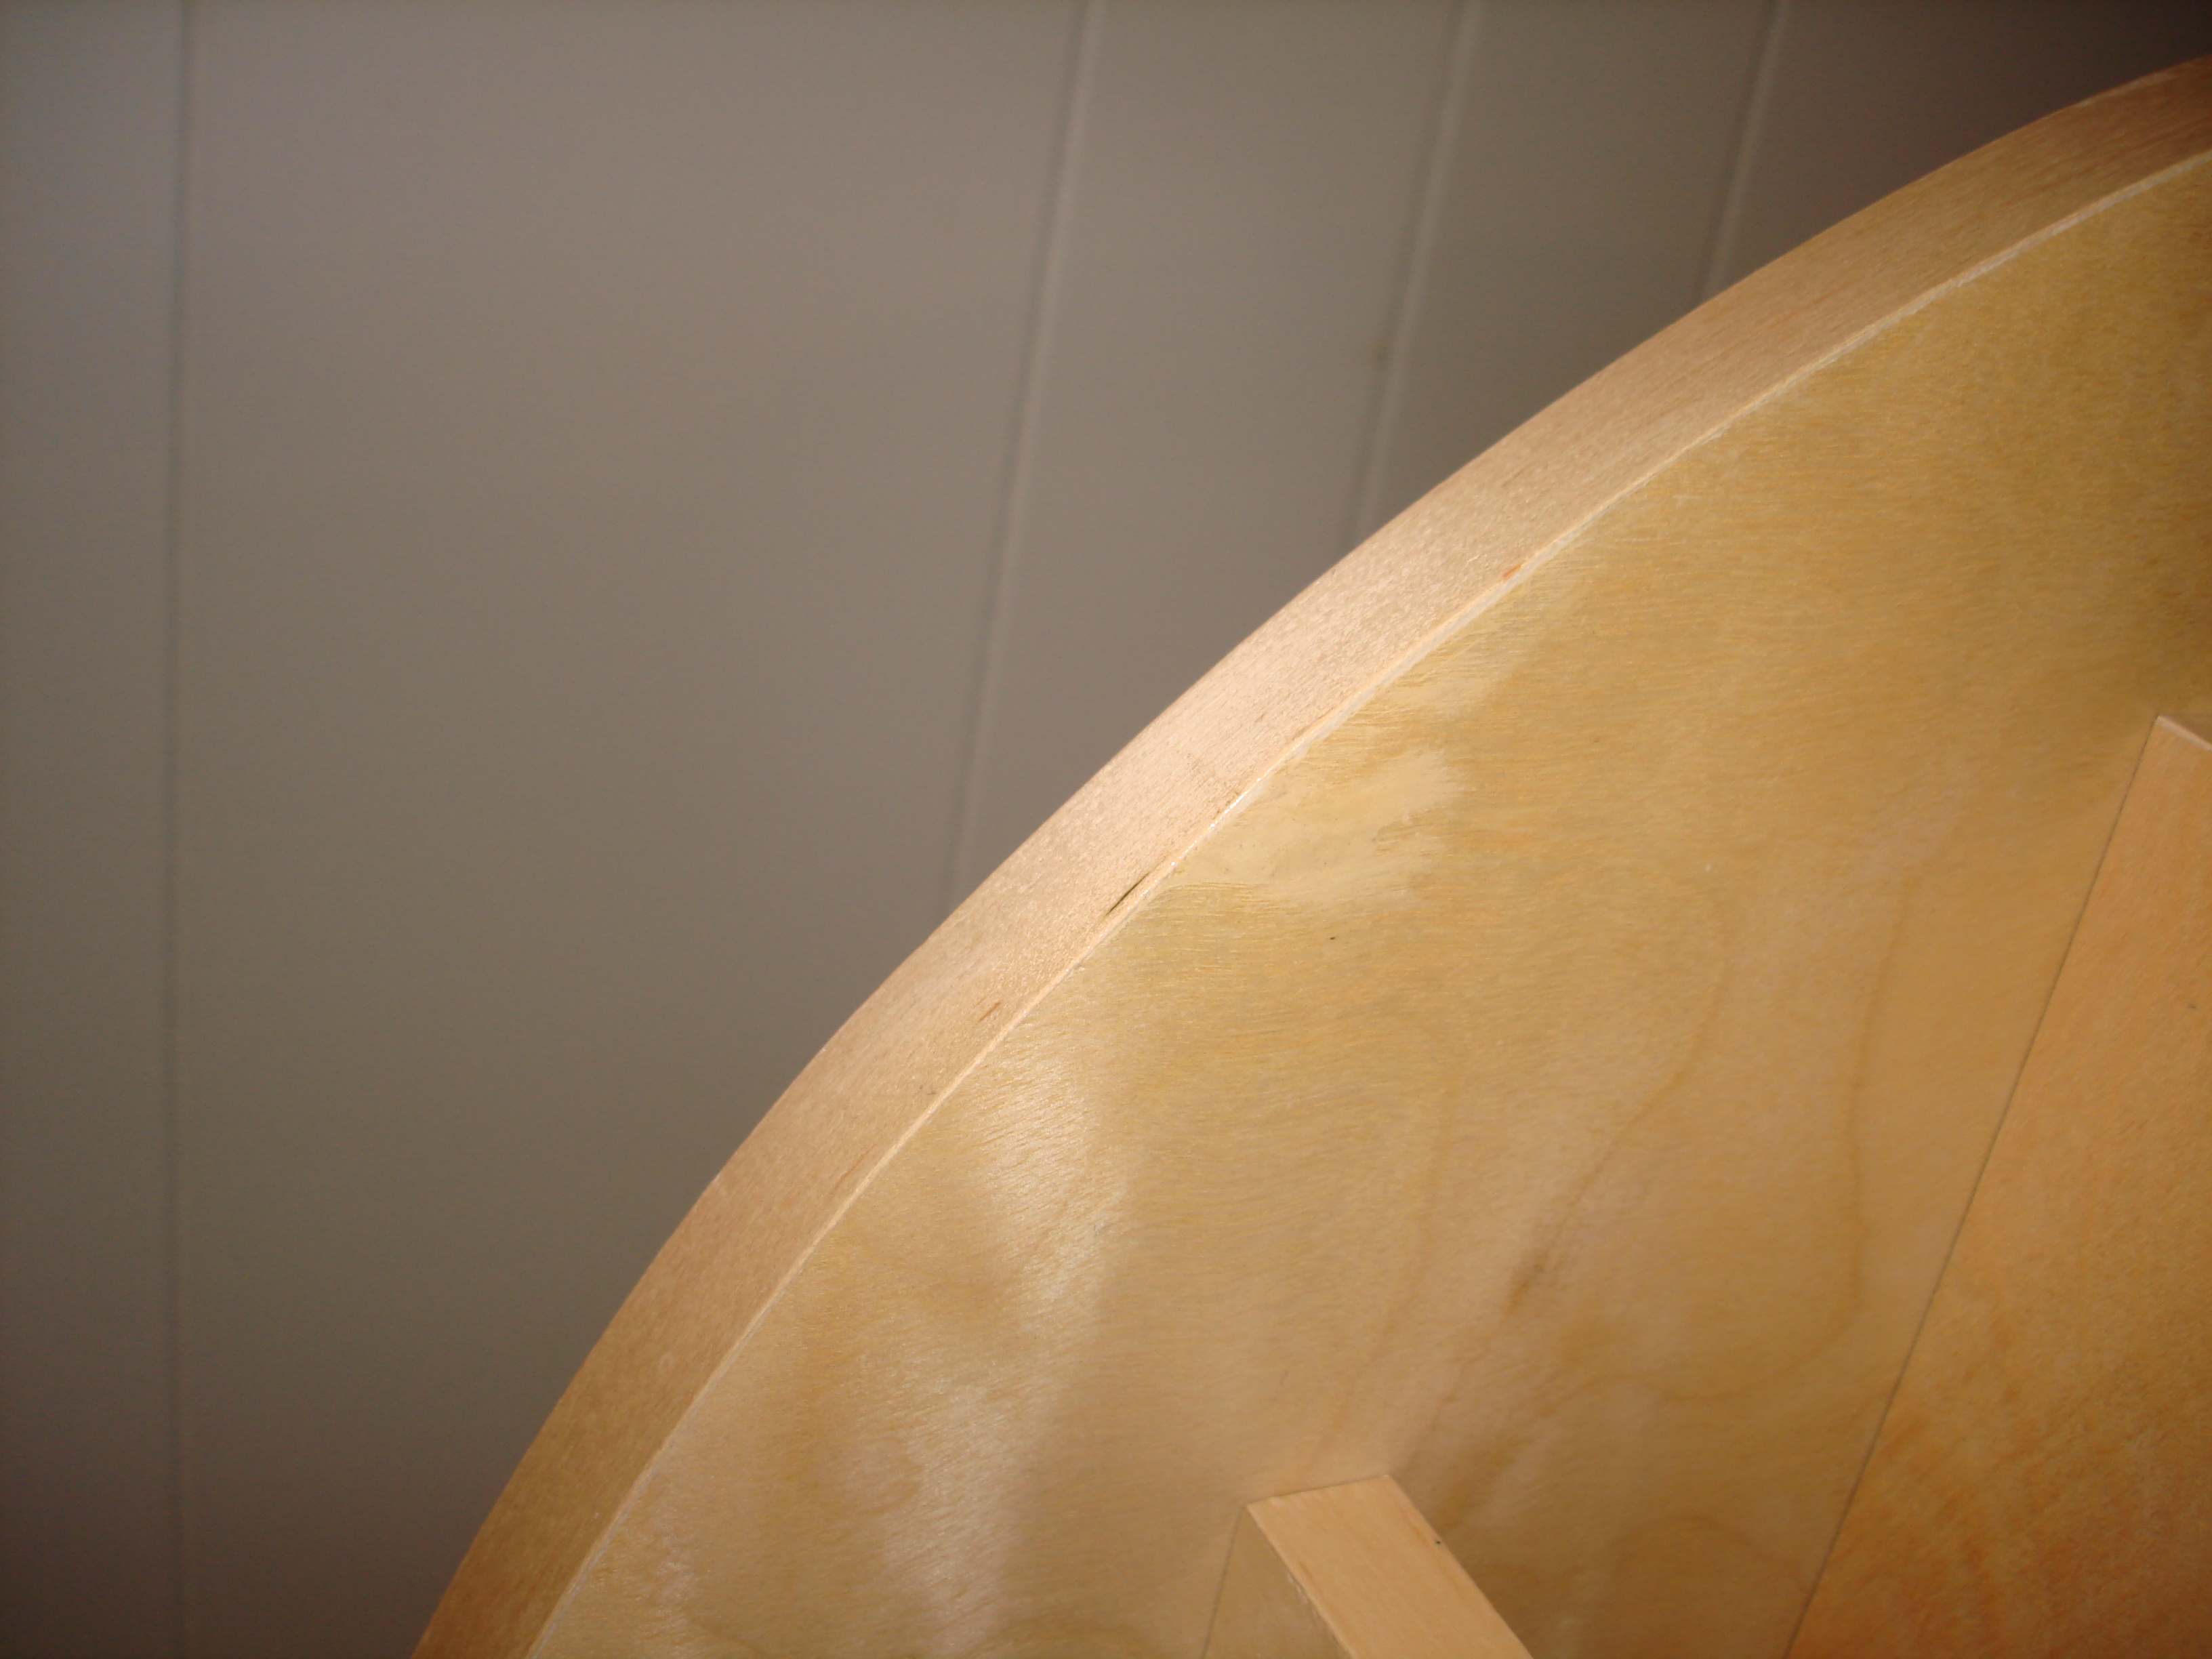 View of the plywood defect after wood filler and banding applied